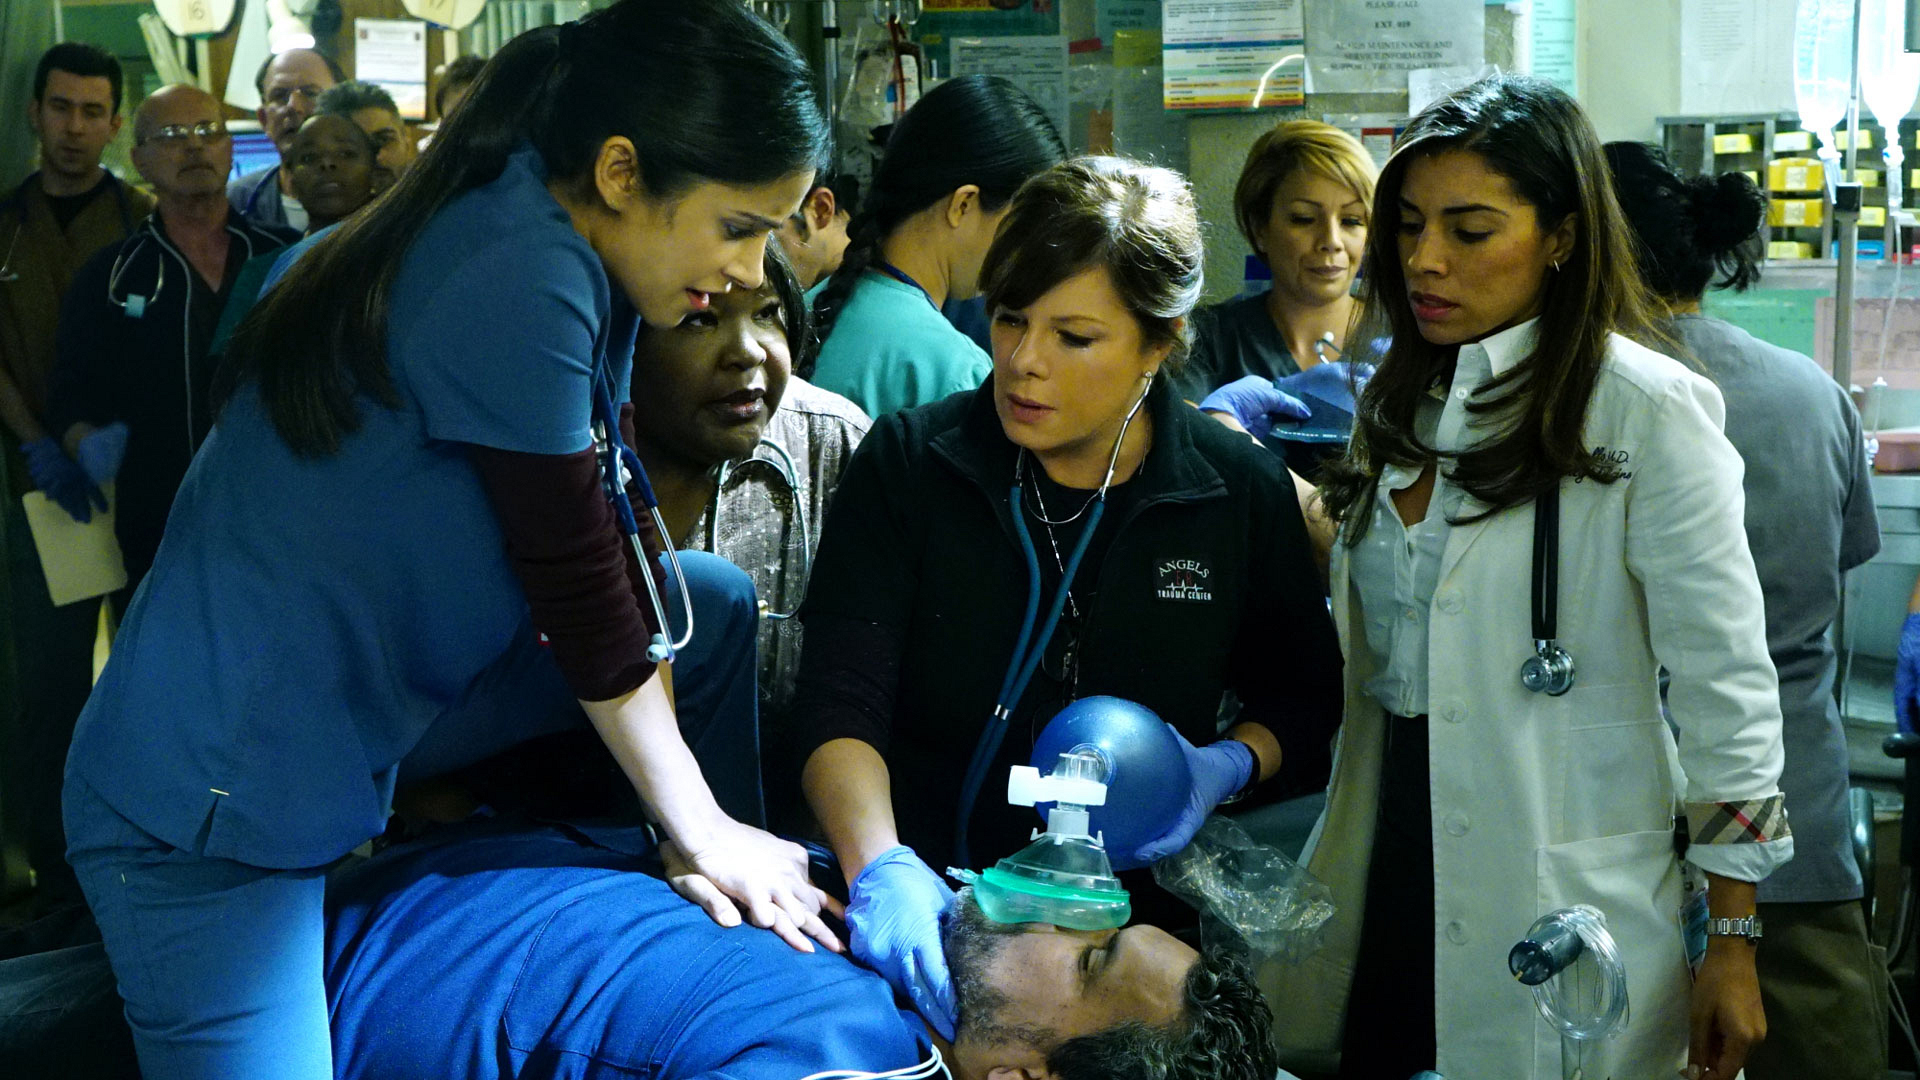 Melanie Chandra as Dr. Malaya Pineda and Marcia Gay Harden as Dr. Leanne Rorish